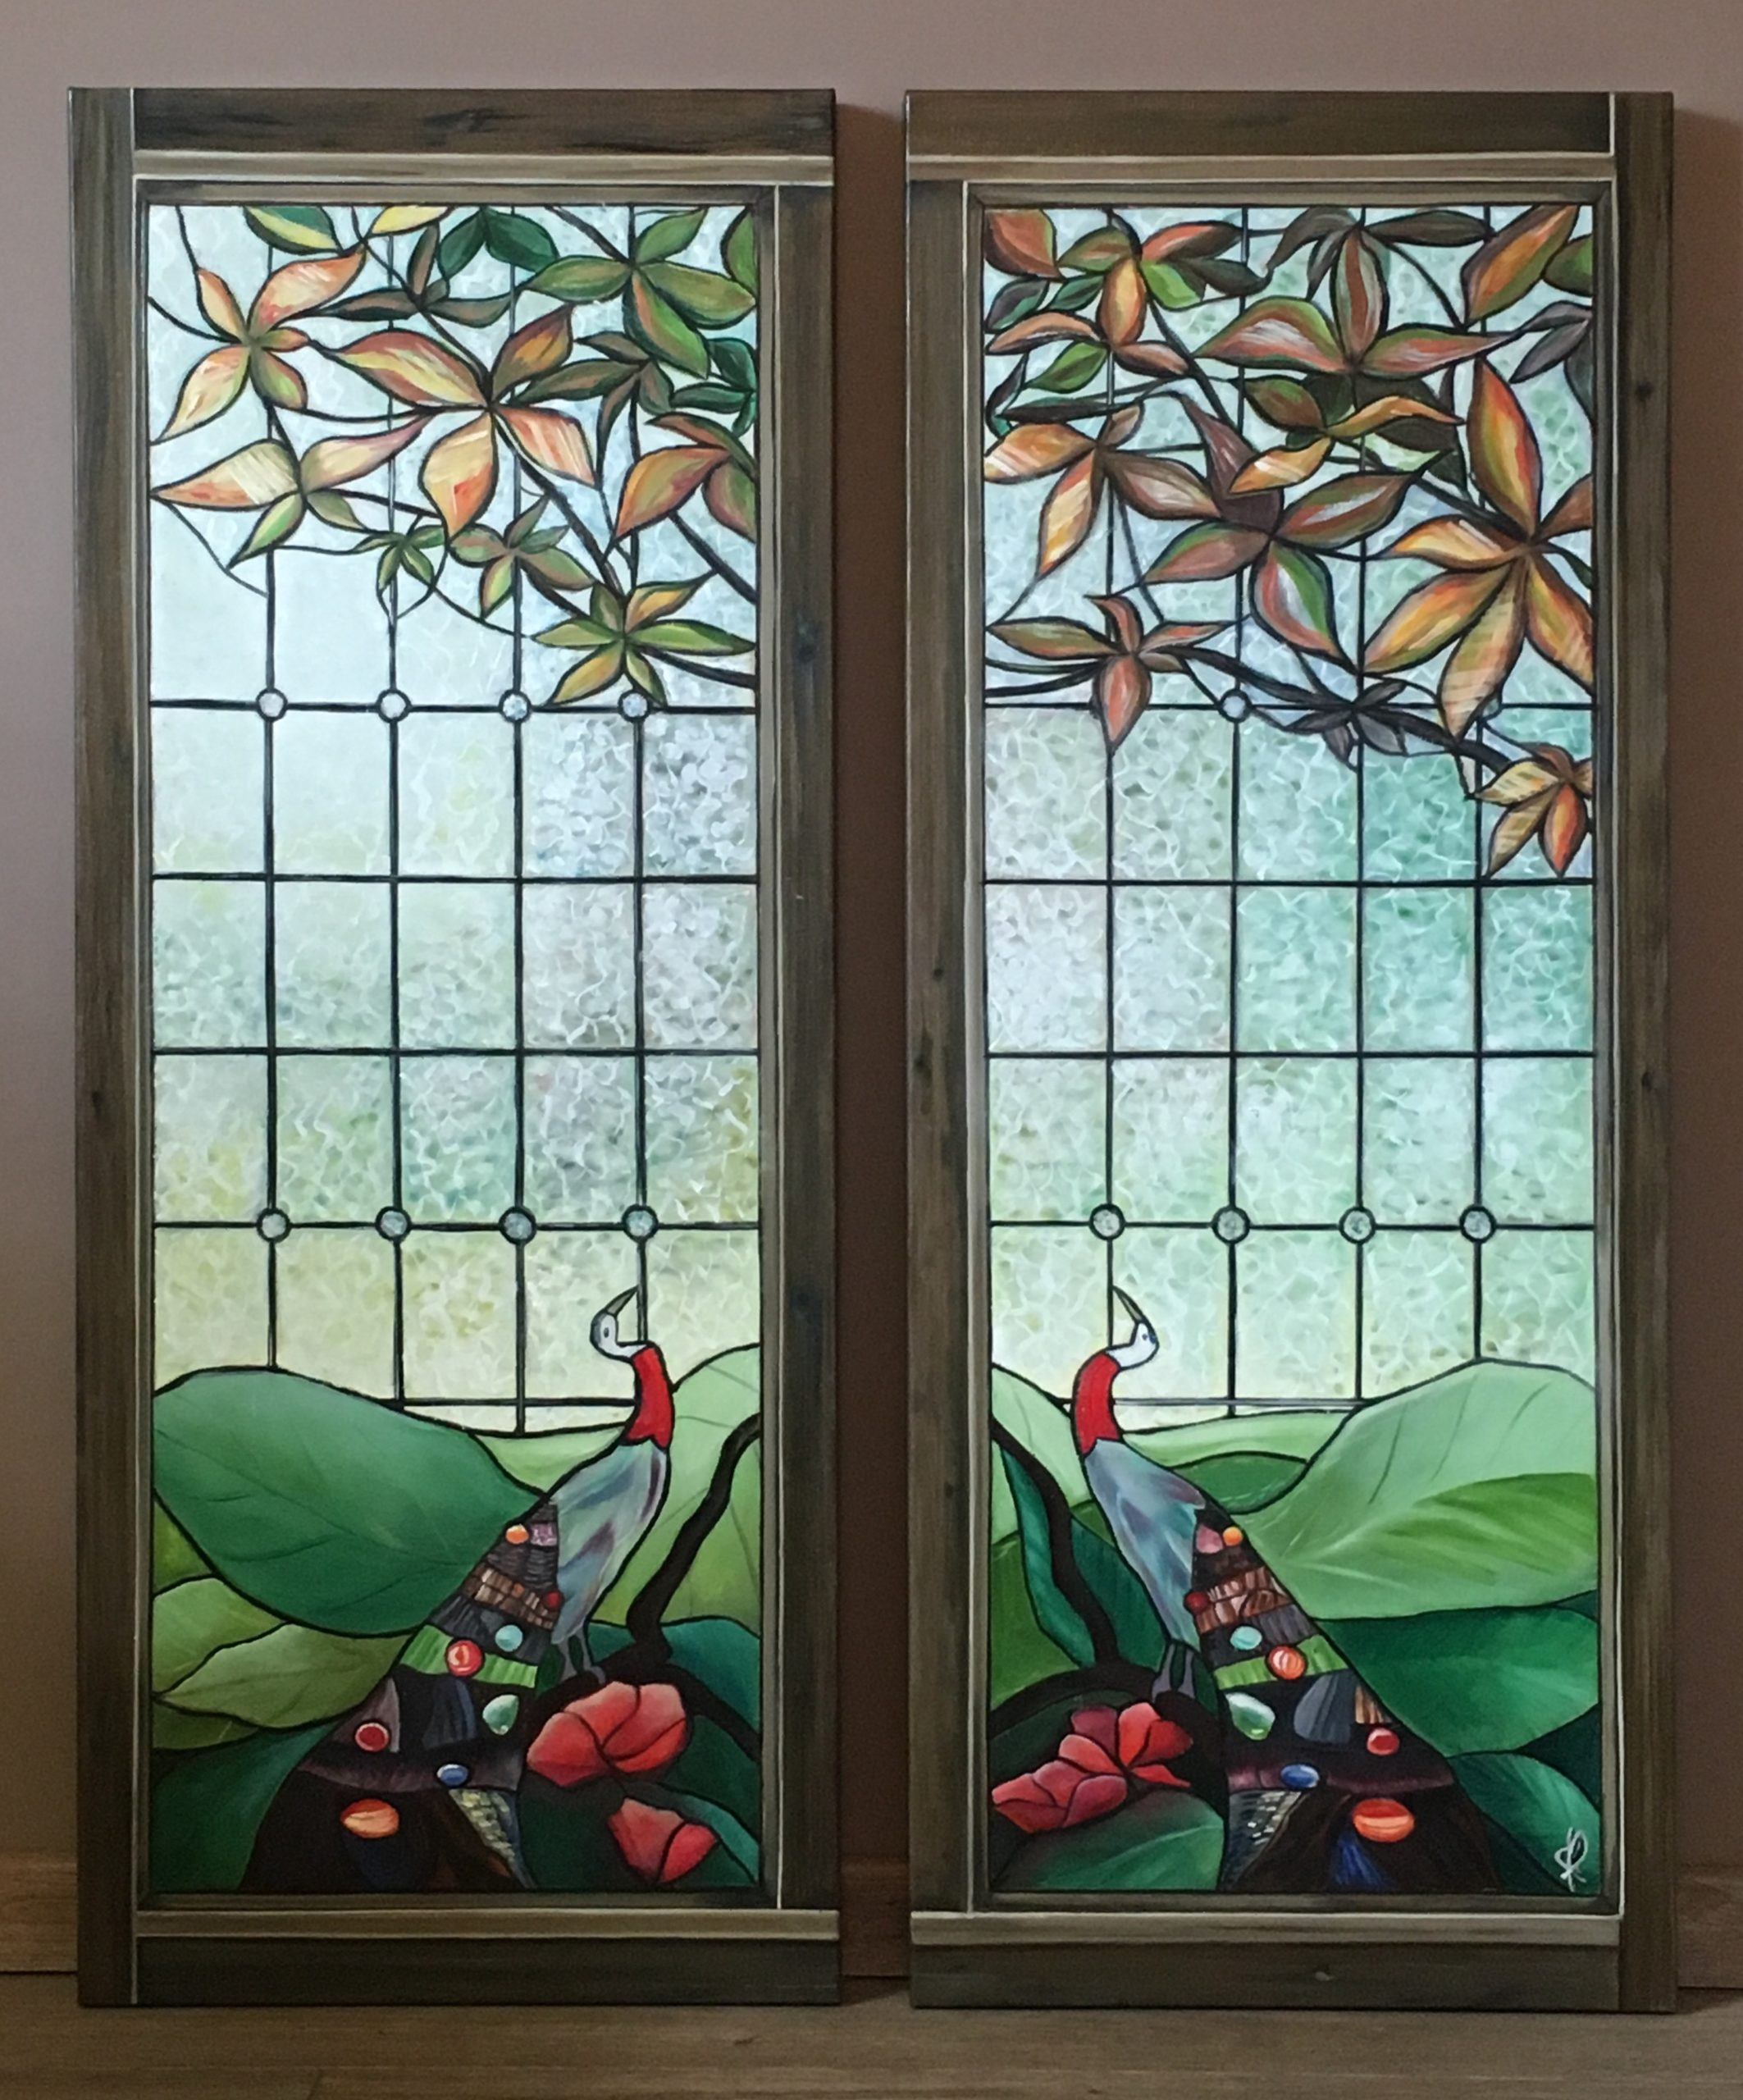 Stained glasses on garden - acrylic and oil on canvas - 100X40